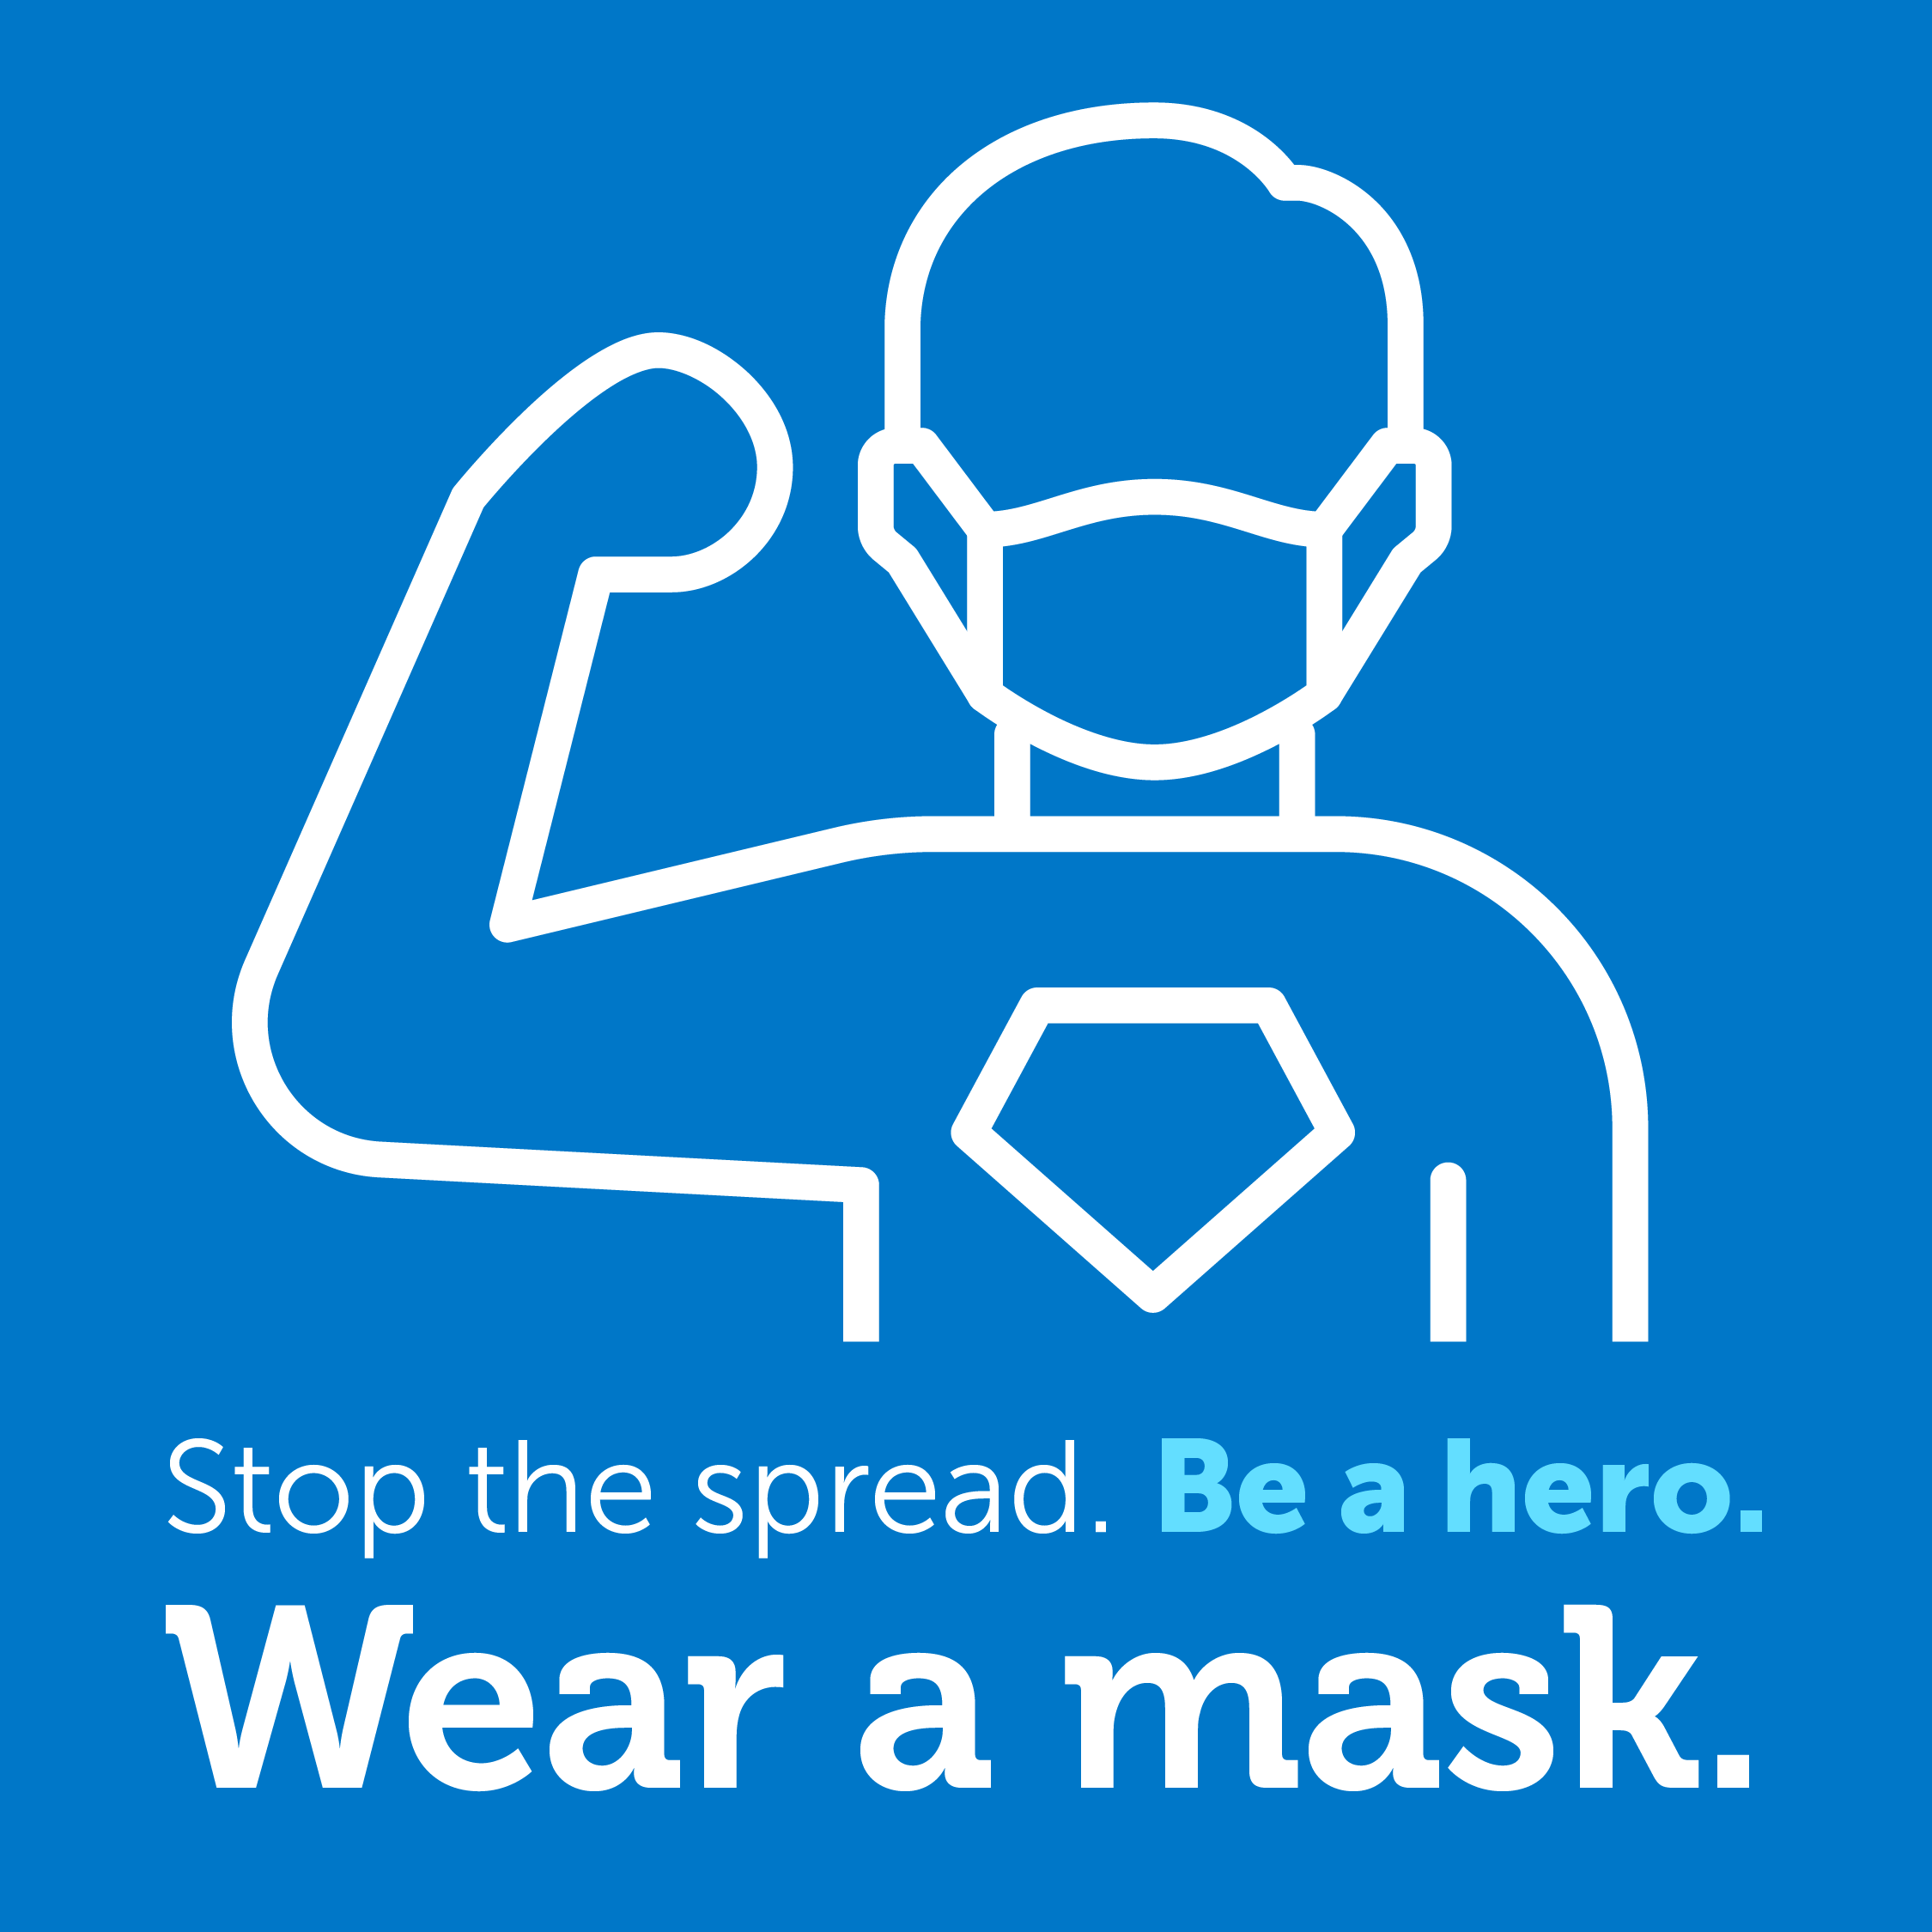 Wear a mask. Be a hero image